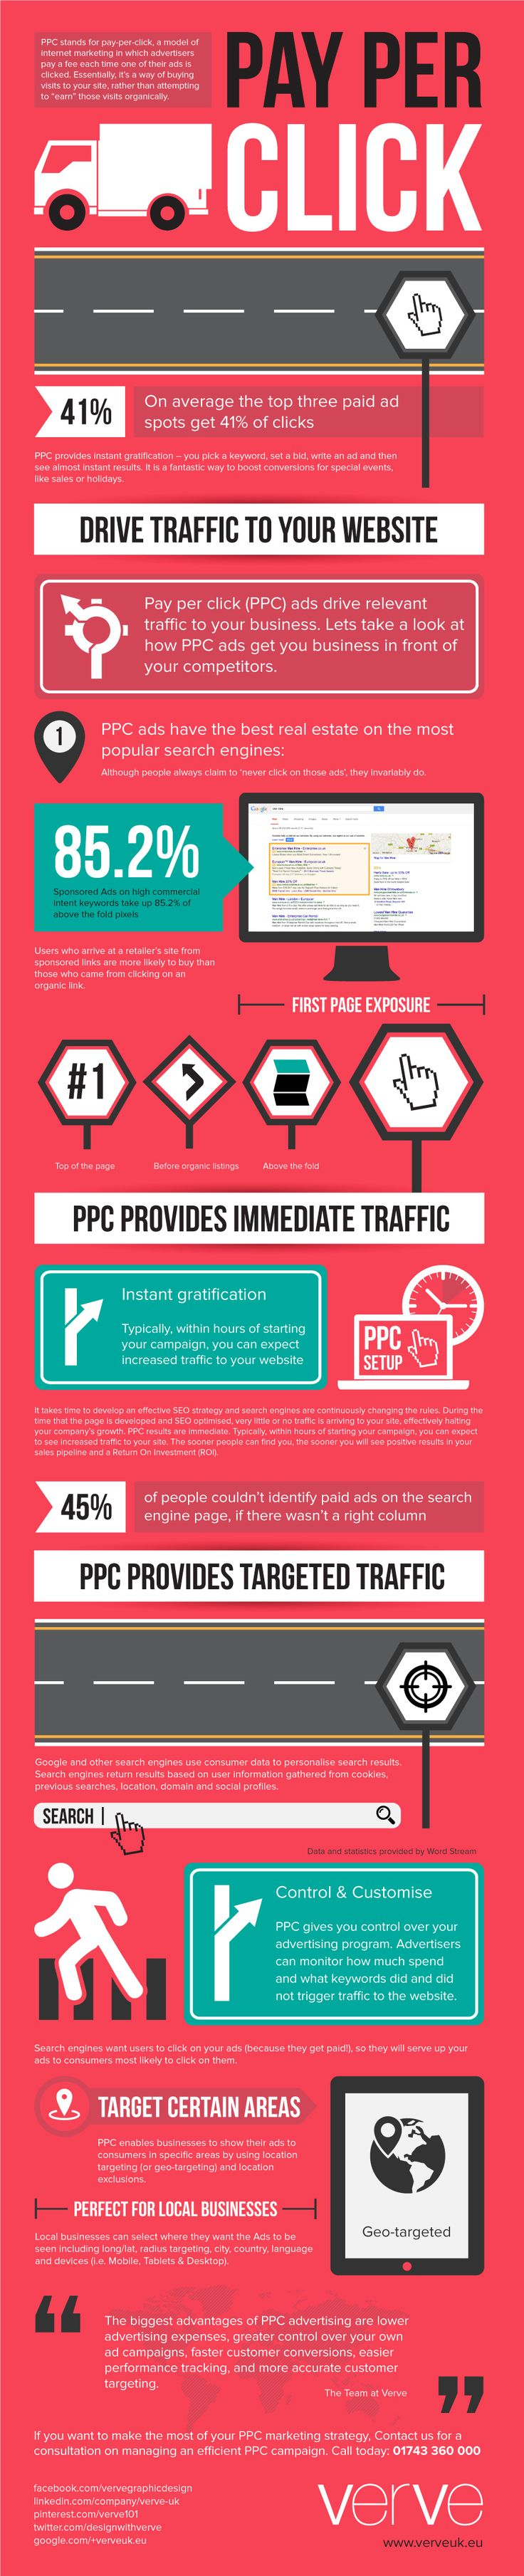 Pay per click (PPC) is an internet advertising model used to direct traffic to websites, in which advertisers pay the publisher (typically Google) each time an ad is clicked. With